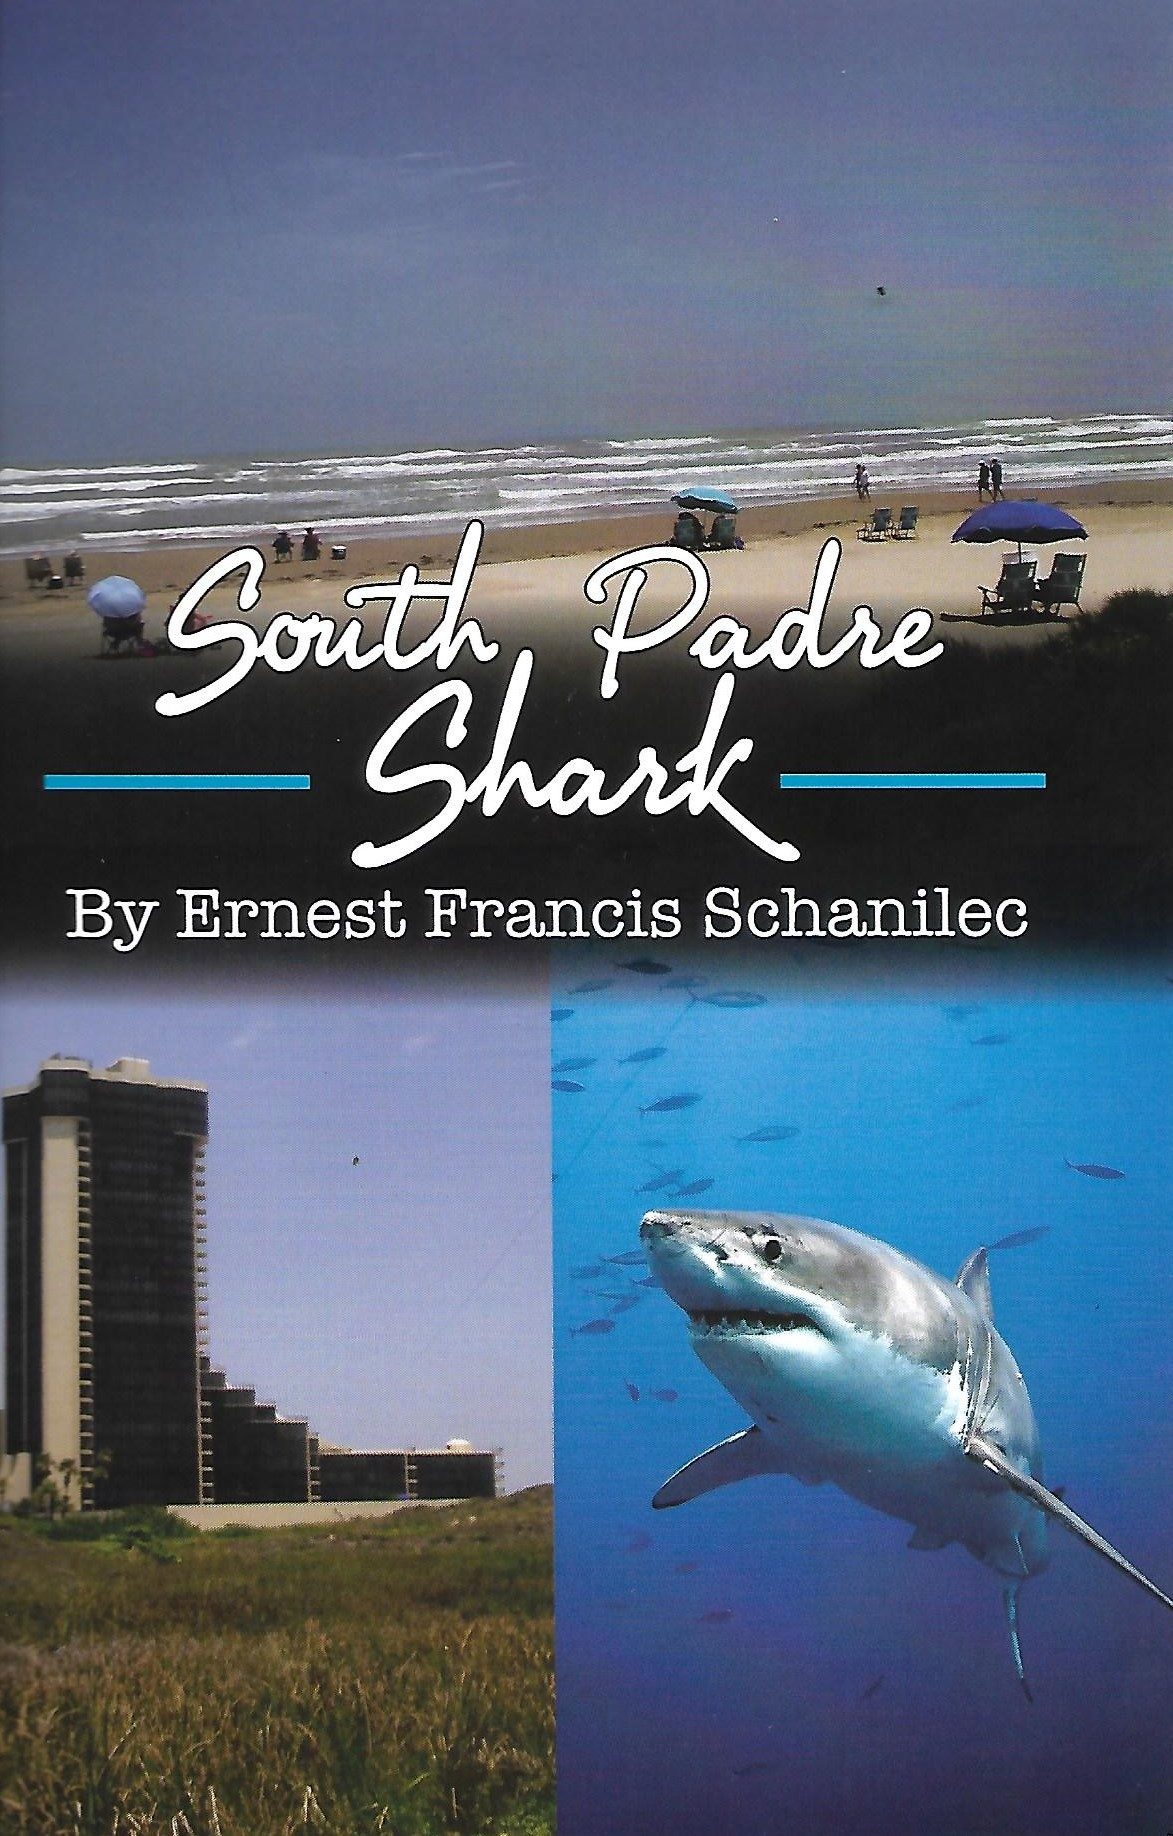 South Padre Shark